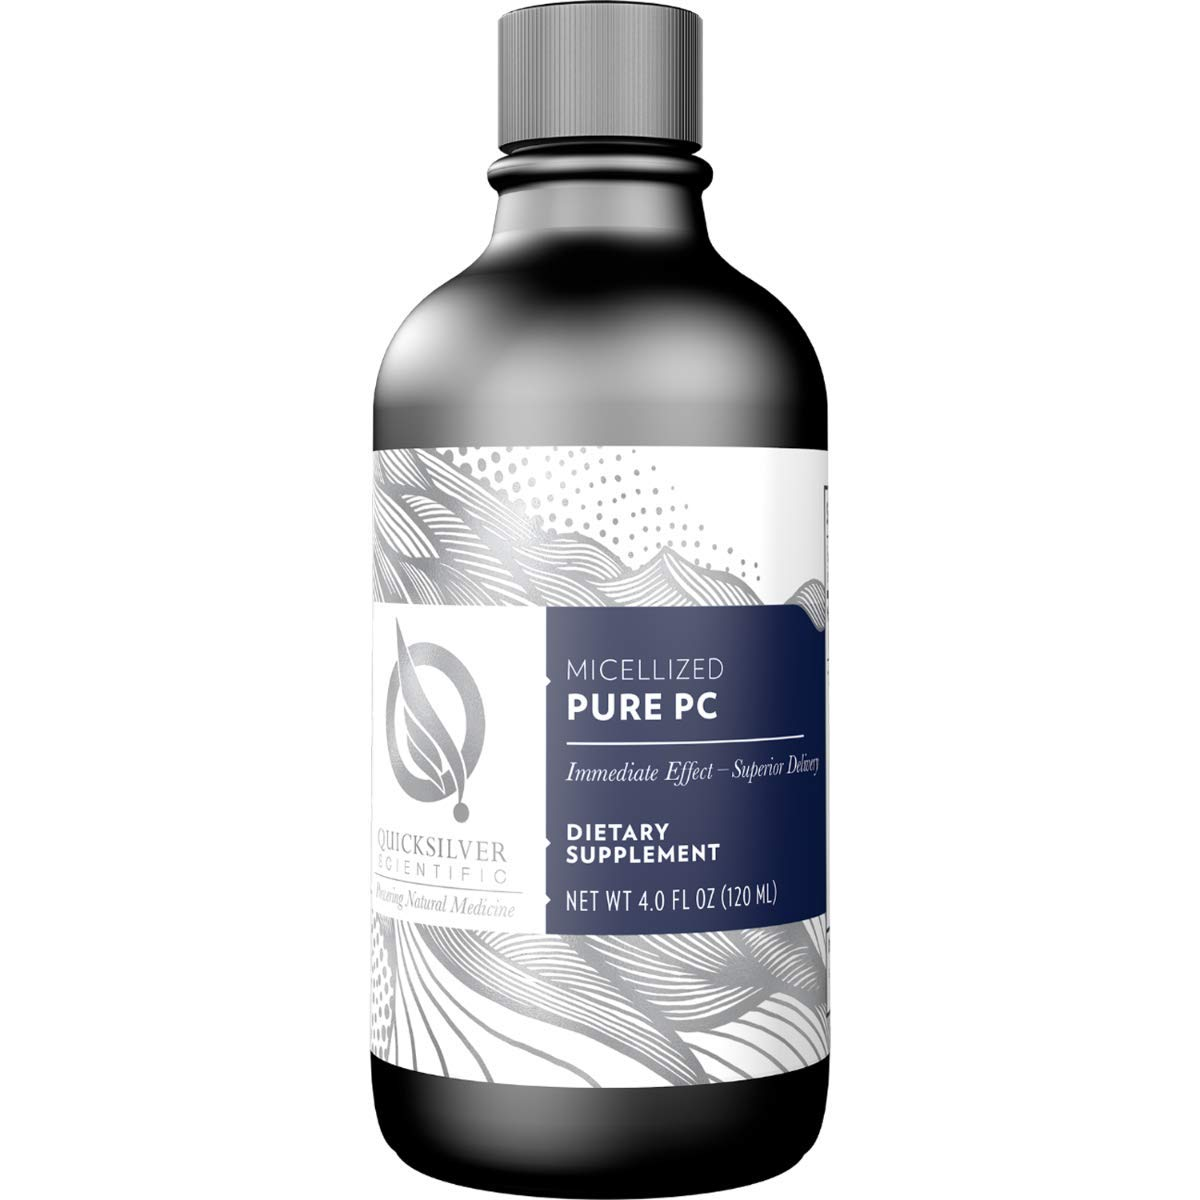 Quicksilver Scientific Micellized Pure PC - Phosphatidylcholine Liquid Supplement to Support Cell Replenishment, Cognitive Function & Liver Detoxification, Gluten-Free (4 Ounces, 120 Milliliters) by Quicksilver Scientific